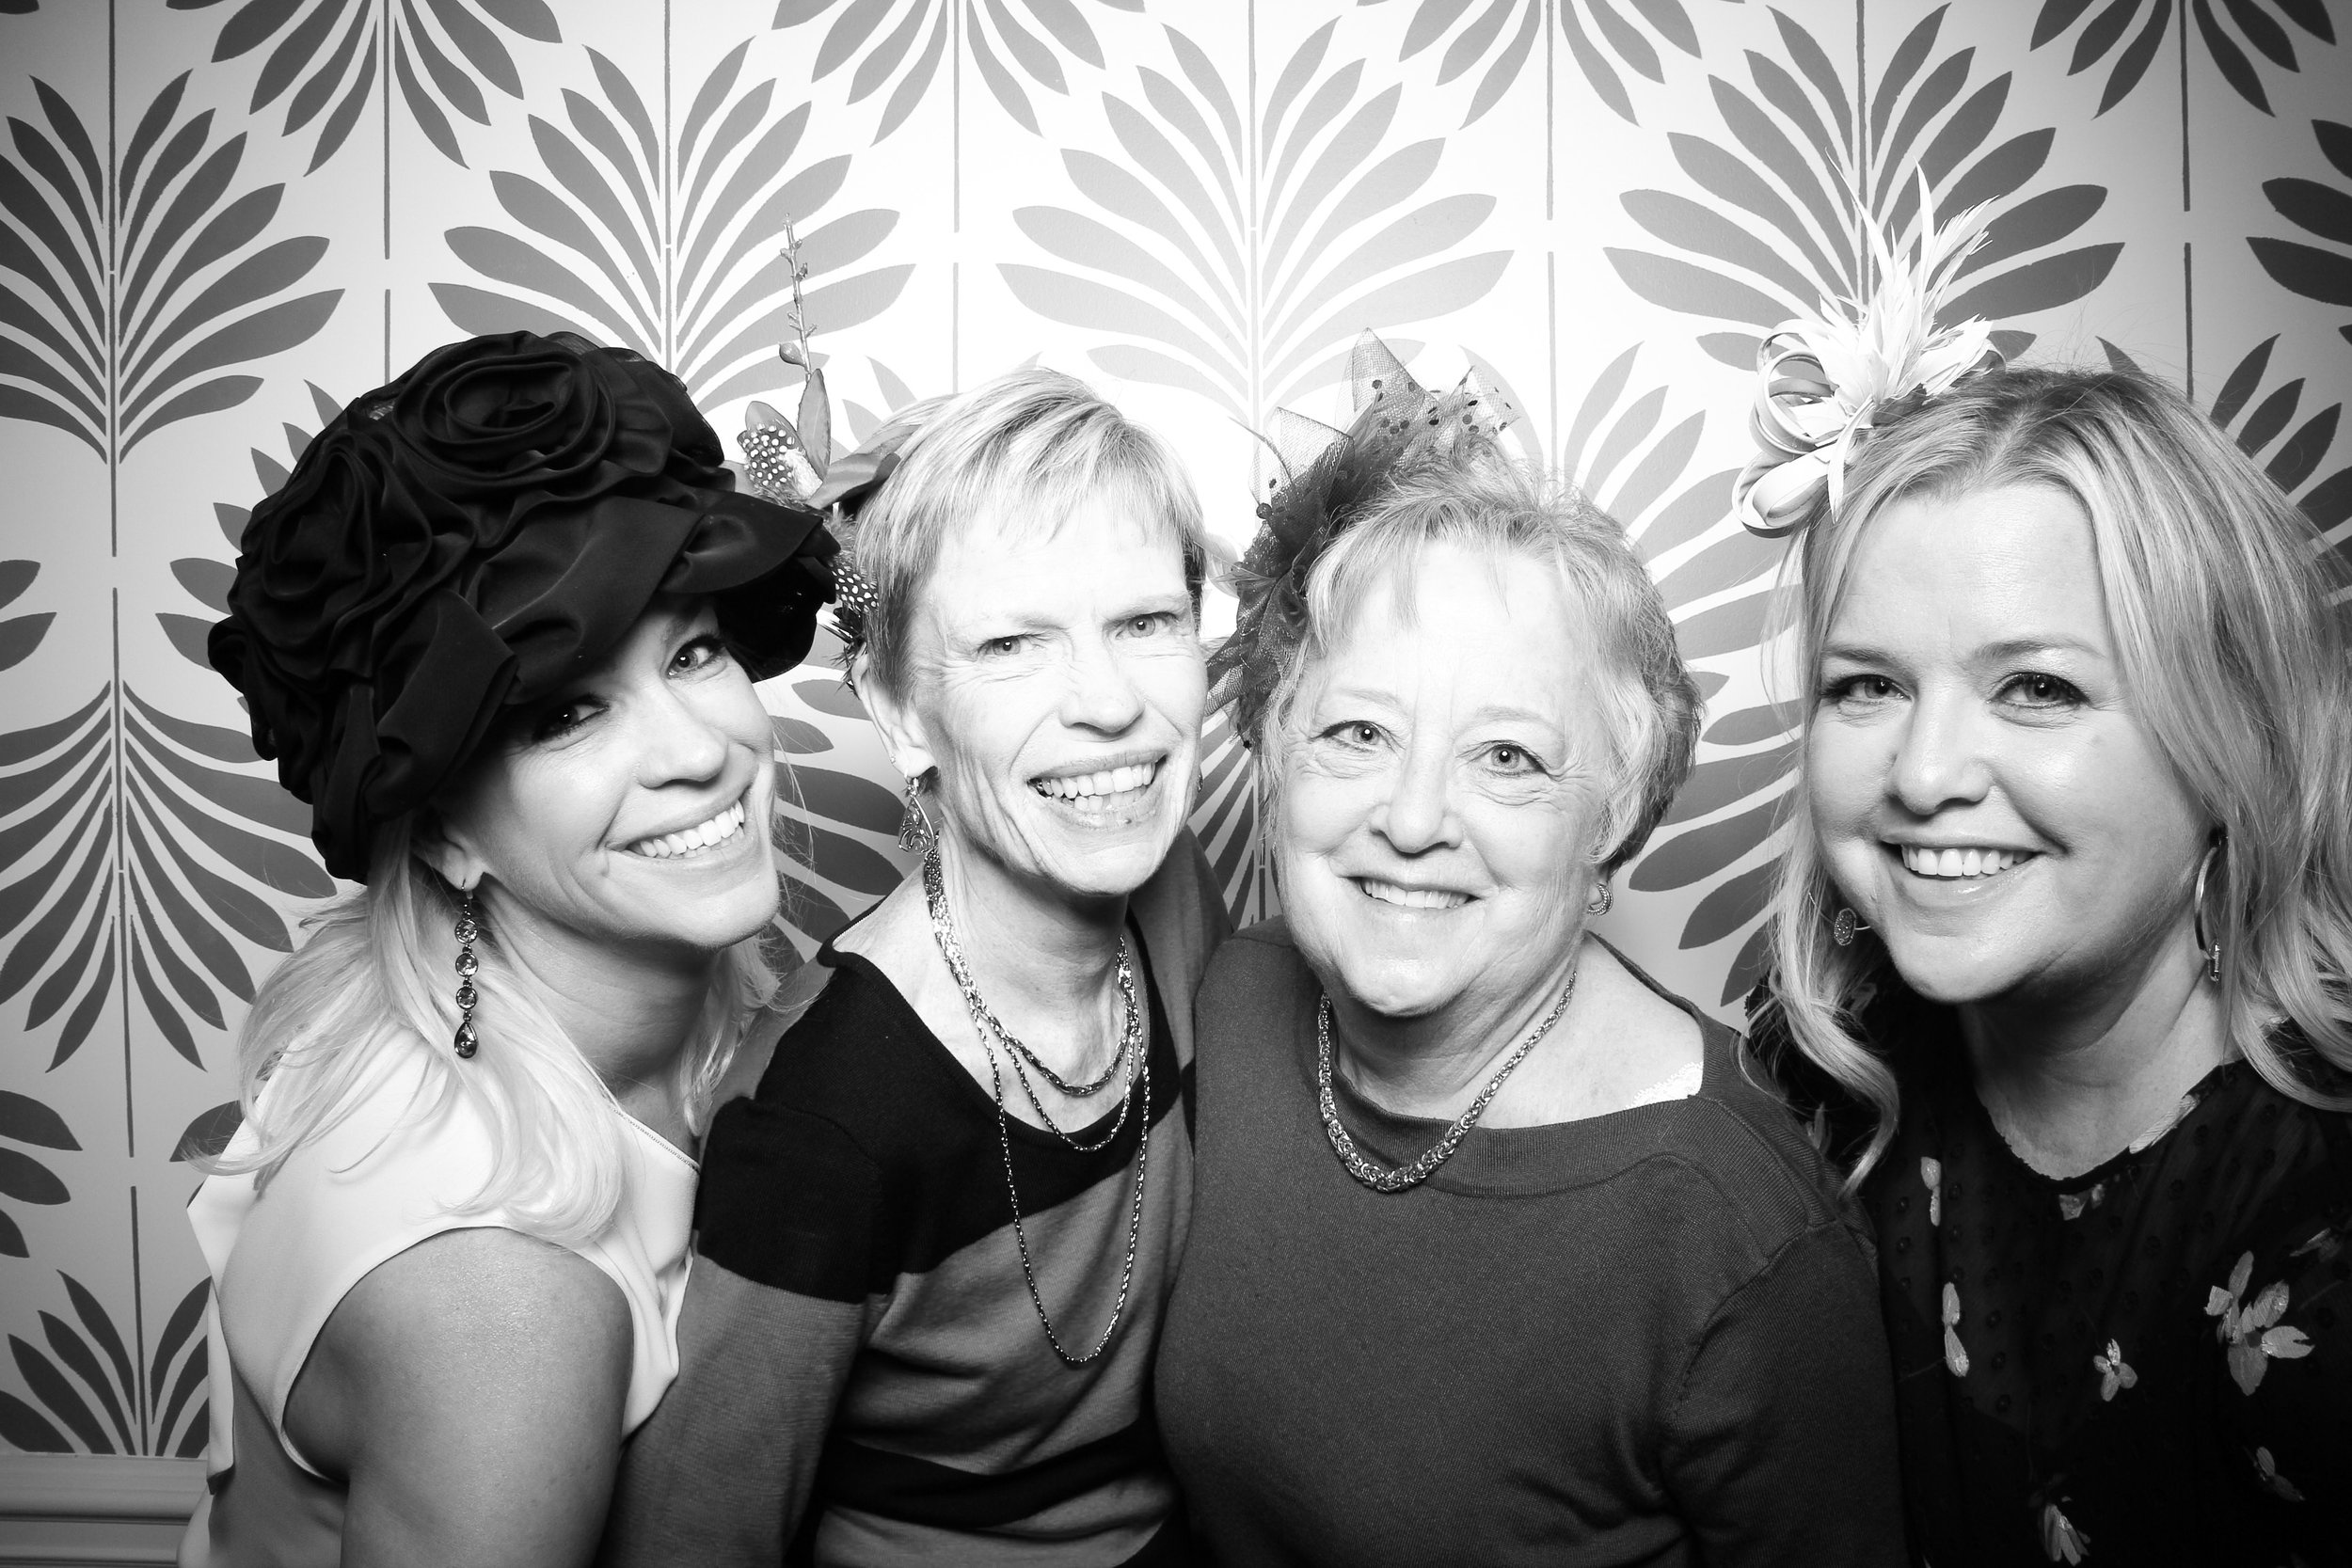 LaGrange_Country_Club_Photo_Booth_Wedding_Reception__02.jpg